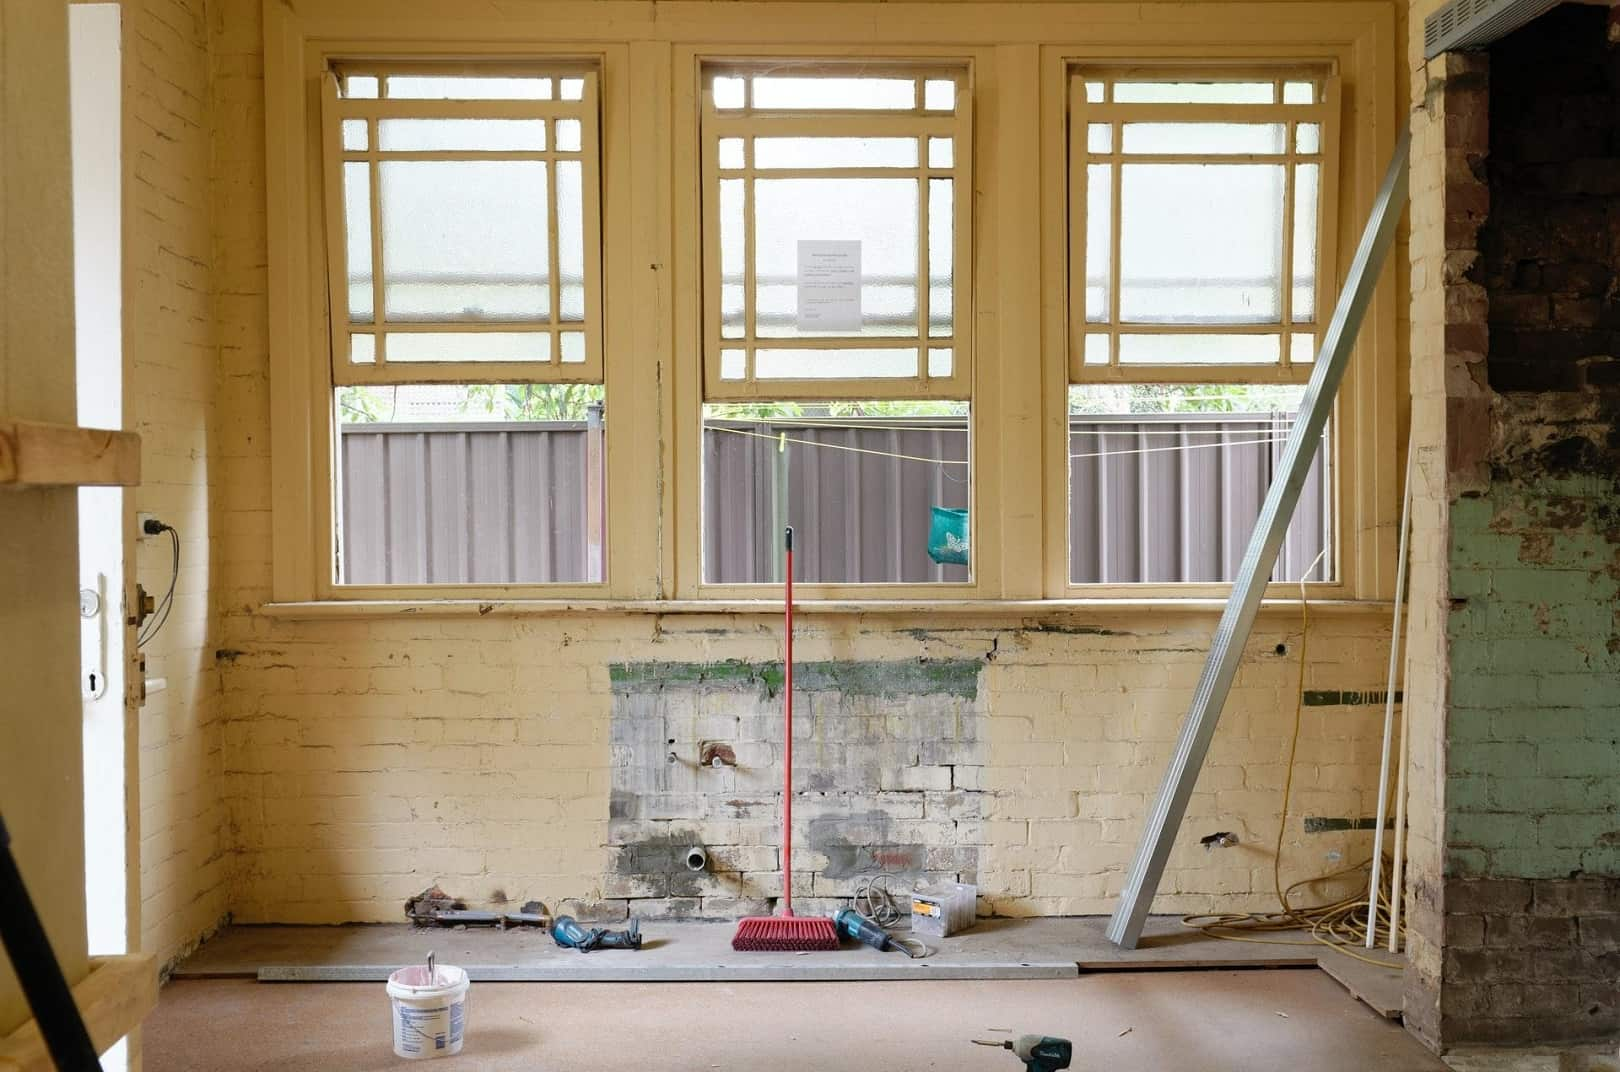 Responsible Disposal: Tips To Get Rid of Renovation Waste. The loft room is being renovated